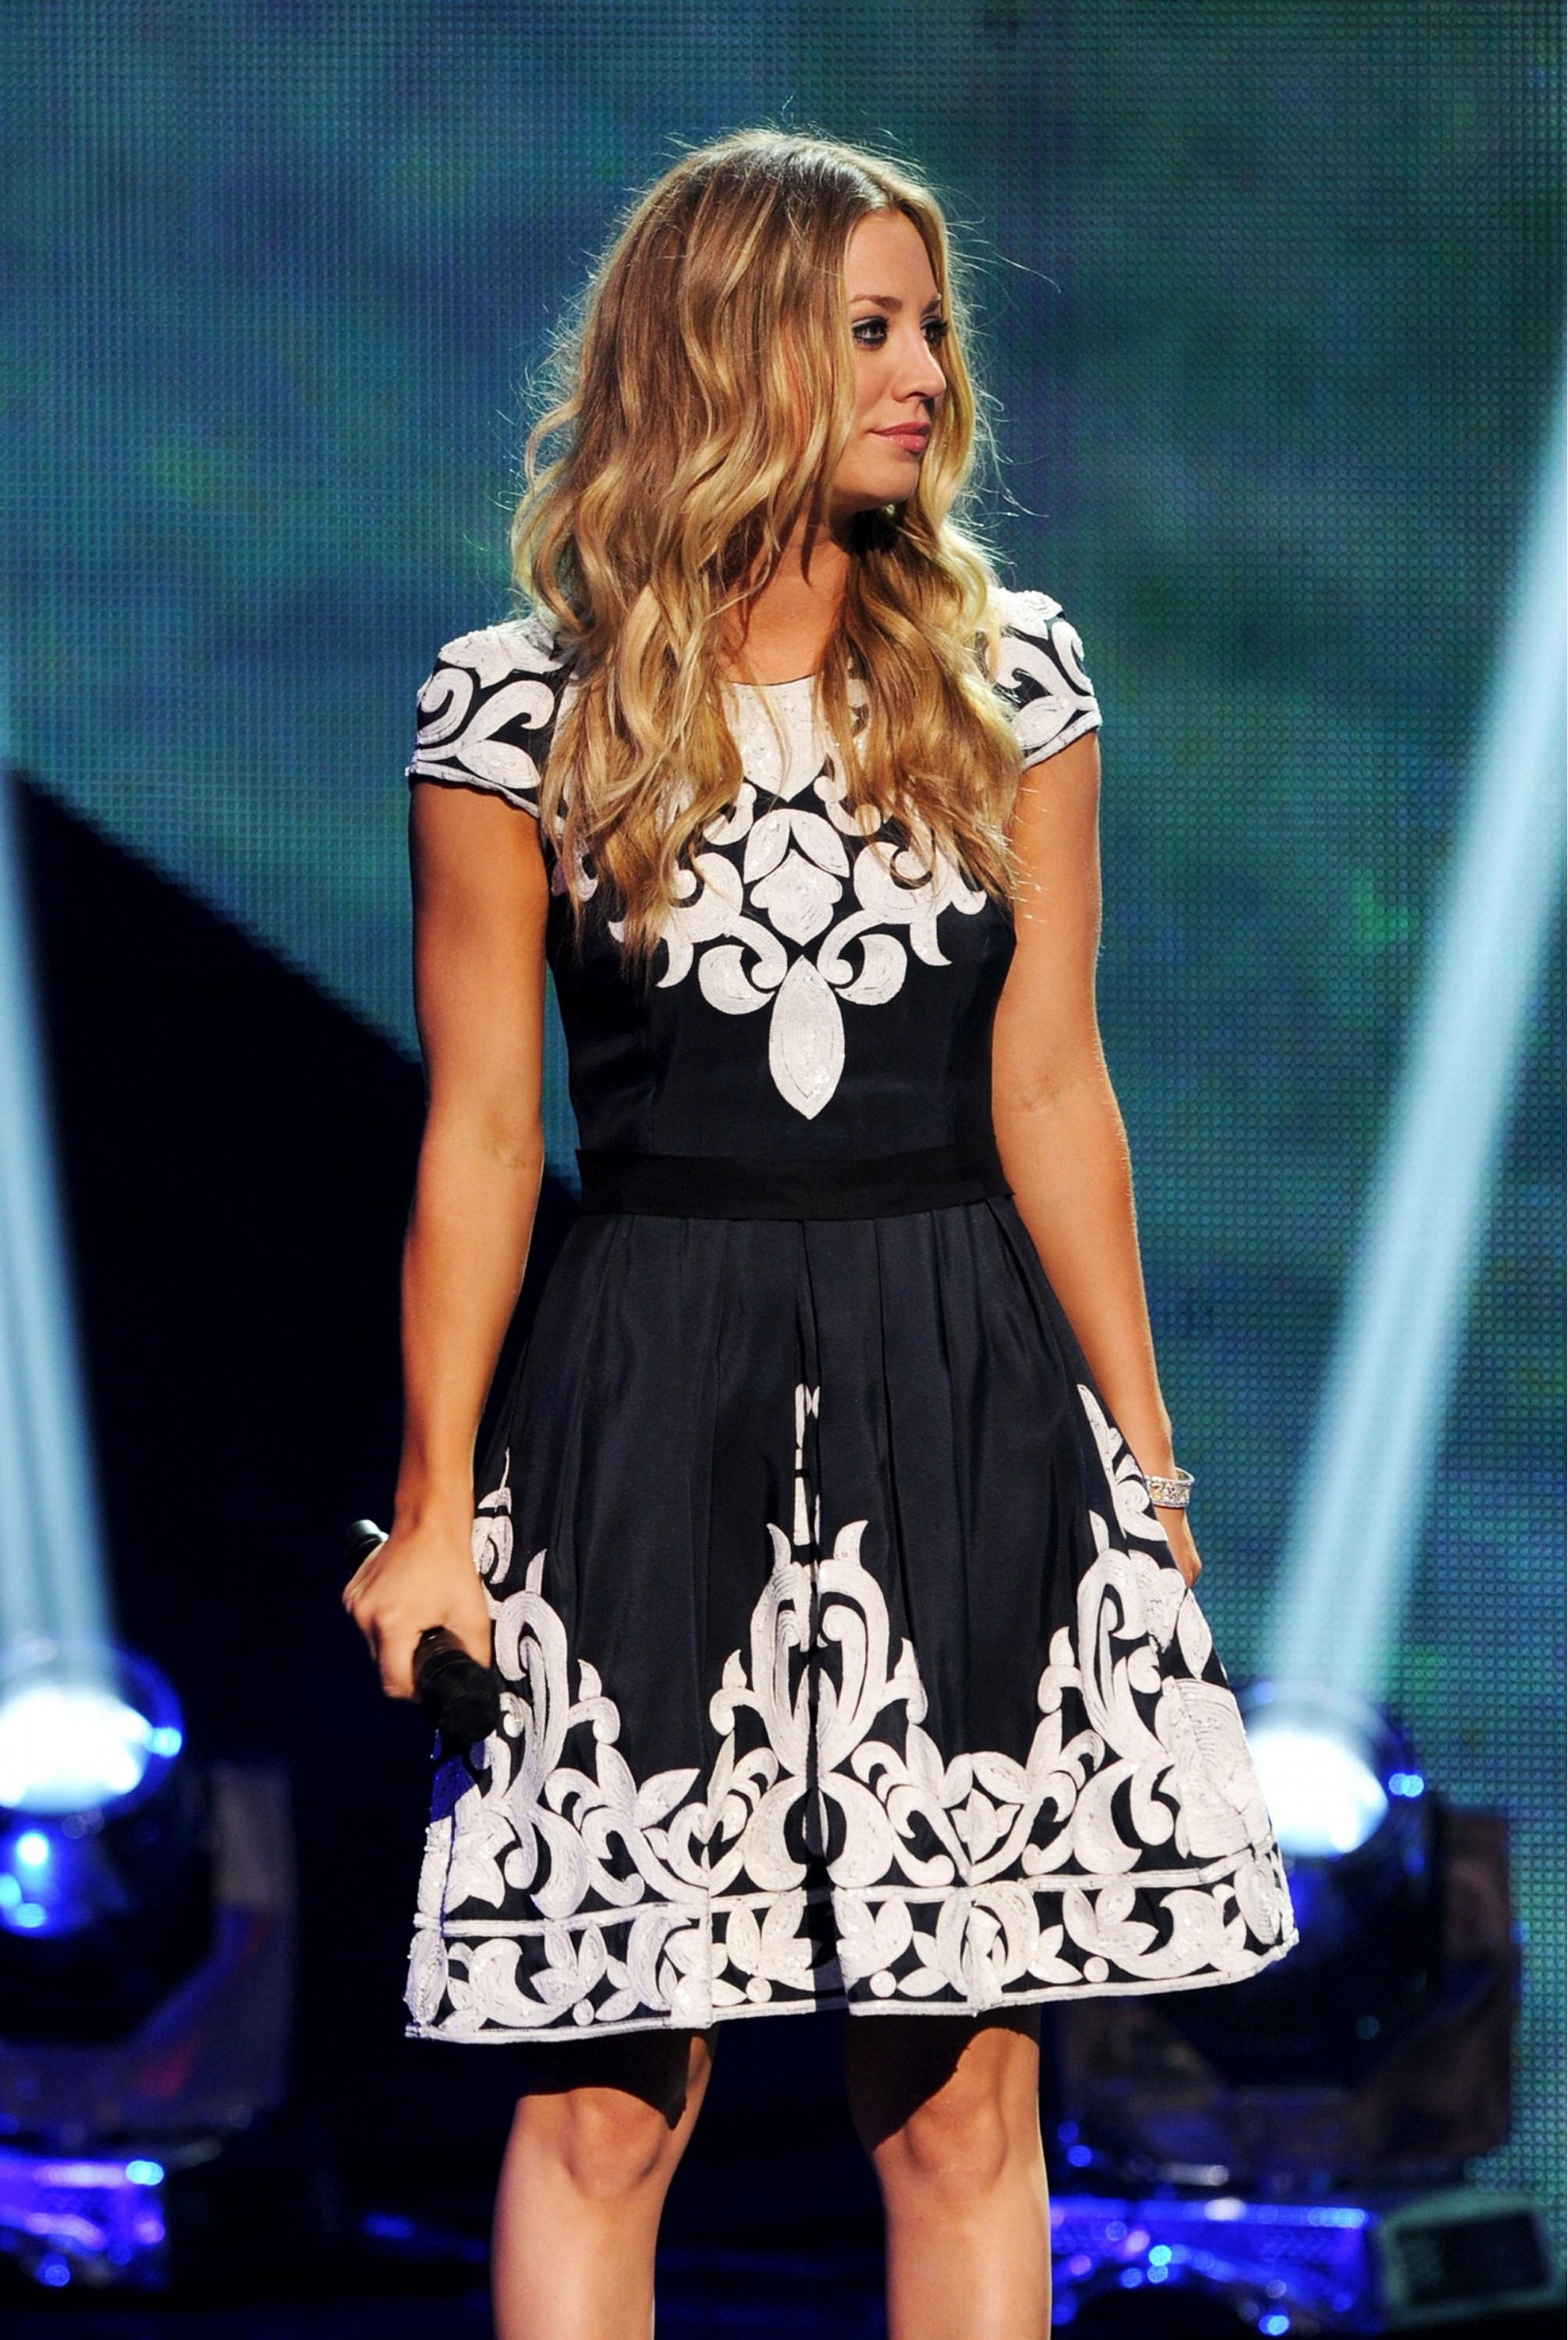 129699117_Kaley_Cuoco_2011_Teen_Choice_Awards14_122_438lo.jpg